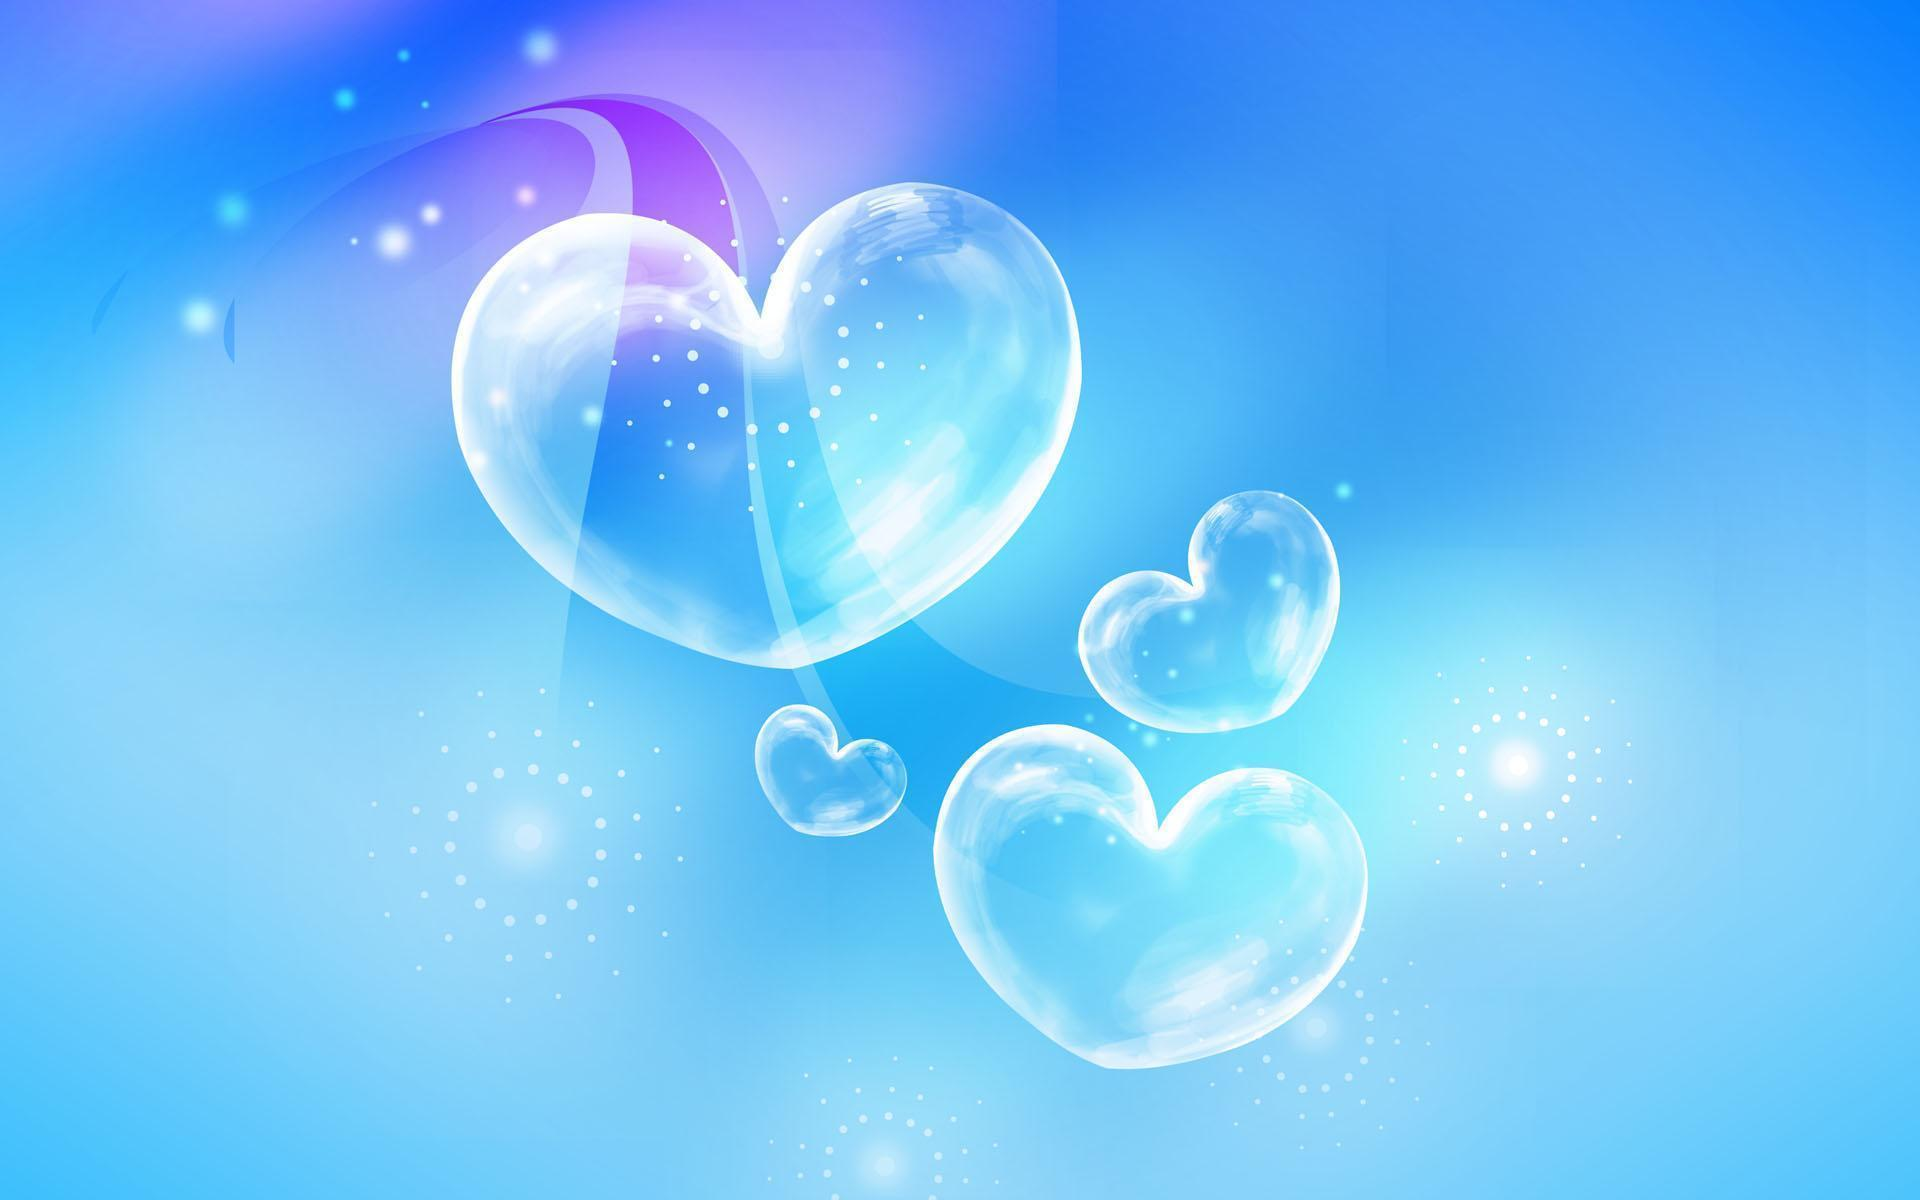 Blue Hearts Wallpapers Wallpaper Cave